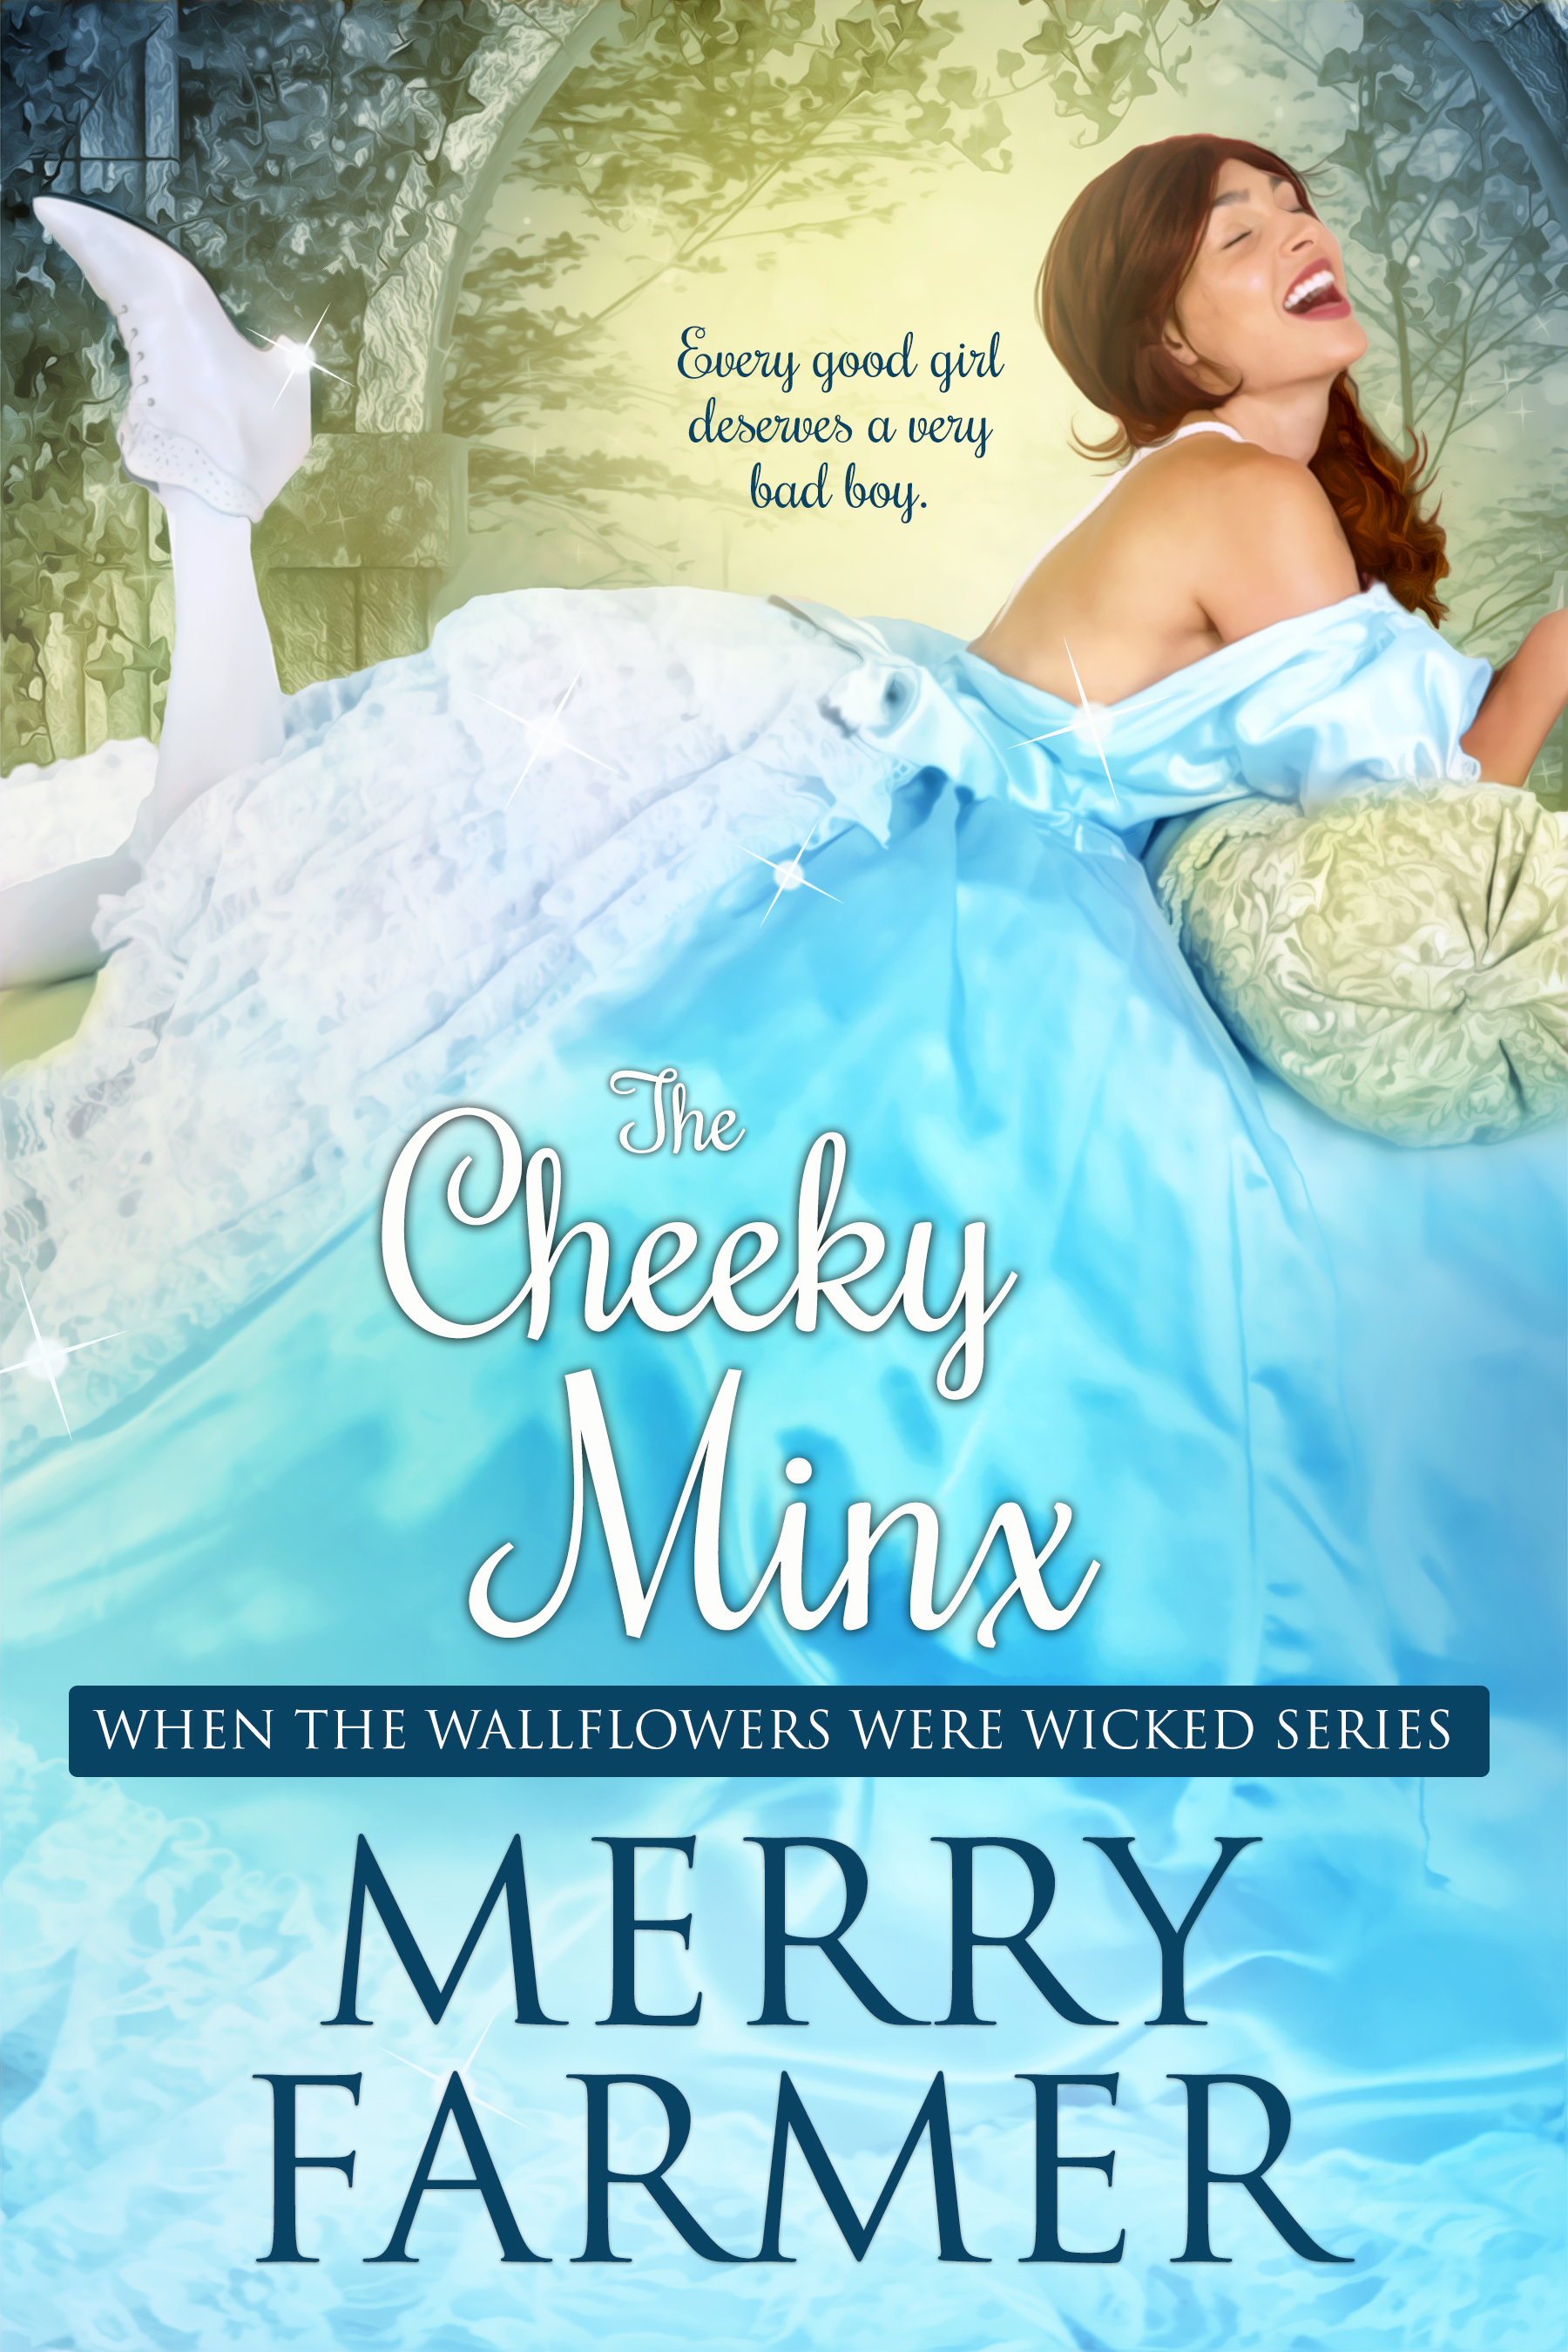 The Cheeky Minx (Book Five) - Every good girl deserves a very bad boy…After one little moral slip, Miss Josephine Hodges was banished to Miss Dobson's Finishing School to mend her ways. What could have been a misery has turned into a blessing in disguise as she helps her friends investigate the theft of a priceless diamond. But when Jo's mother arrives at the school to inform her she's been promised in marriage to none other than that notorious Lord Lichfield, Jo is in shock. How could she possibly marry the man she suspects of stealing the diamond?Lord Felix Lichfield is desperate for a wife after rumors of his wickedness cause his fiancé to call off the engagement, but he never suspected his mother would stoop so low as to find a bride for him without his involvement. But when he meets the feisty Miss Hodges, things begin to look up. Except that he suspects his new fiancée has heard all about his reputation and wishes embrace it just when he would do anything to put that part of his life behind him.There is more going on than meets the eye, though, and when Jo and Felix team up to hunt the diamond thief—and to explore their passions while they're at it—anything could happen.A light-hearted, fun, SUPER steamy, Regency romp—a quick read, not to be taken too seriously.PLEASE BE ADVISED – Steam Level: Five-Alarm Fire with a few F-bombs. Don't say you weren't warned.